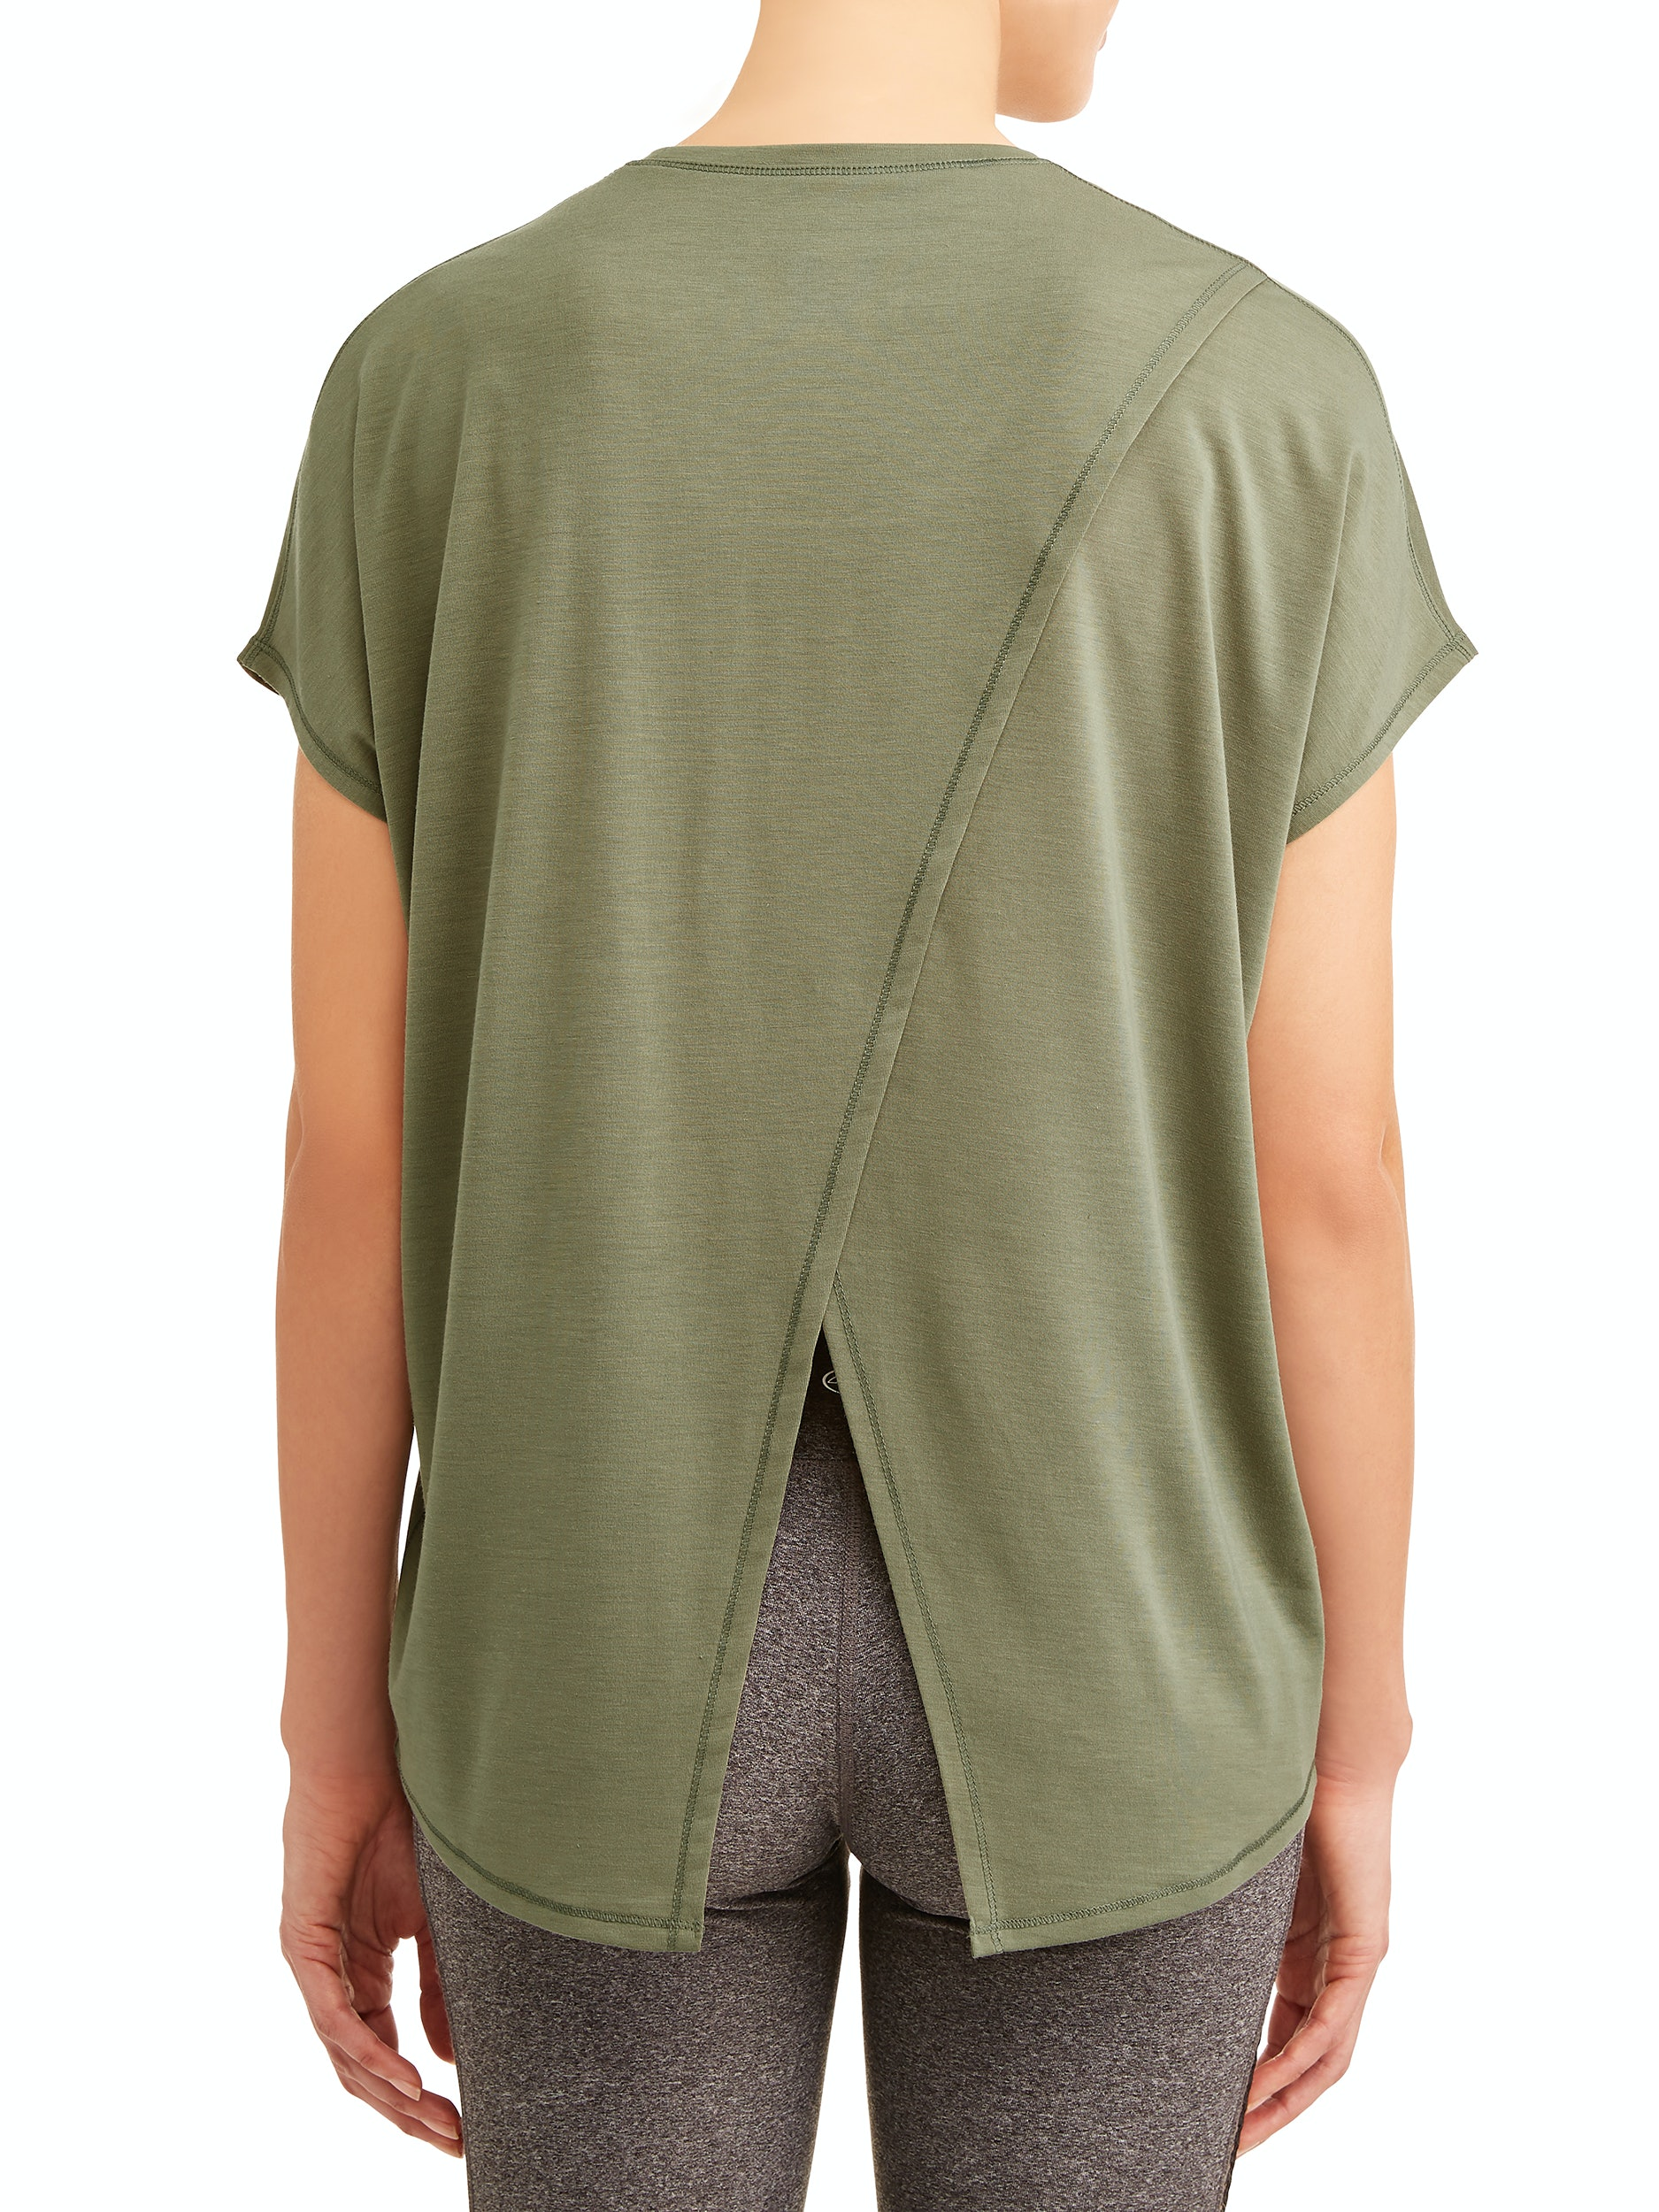 b4659d630 22 Best-Selling T-Shirts On Walmart.com That Will Become Your New Closet  Staples